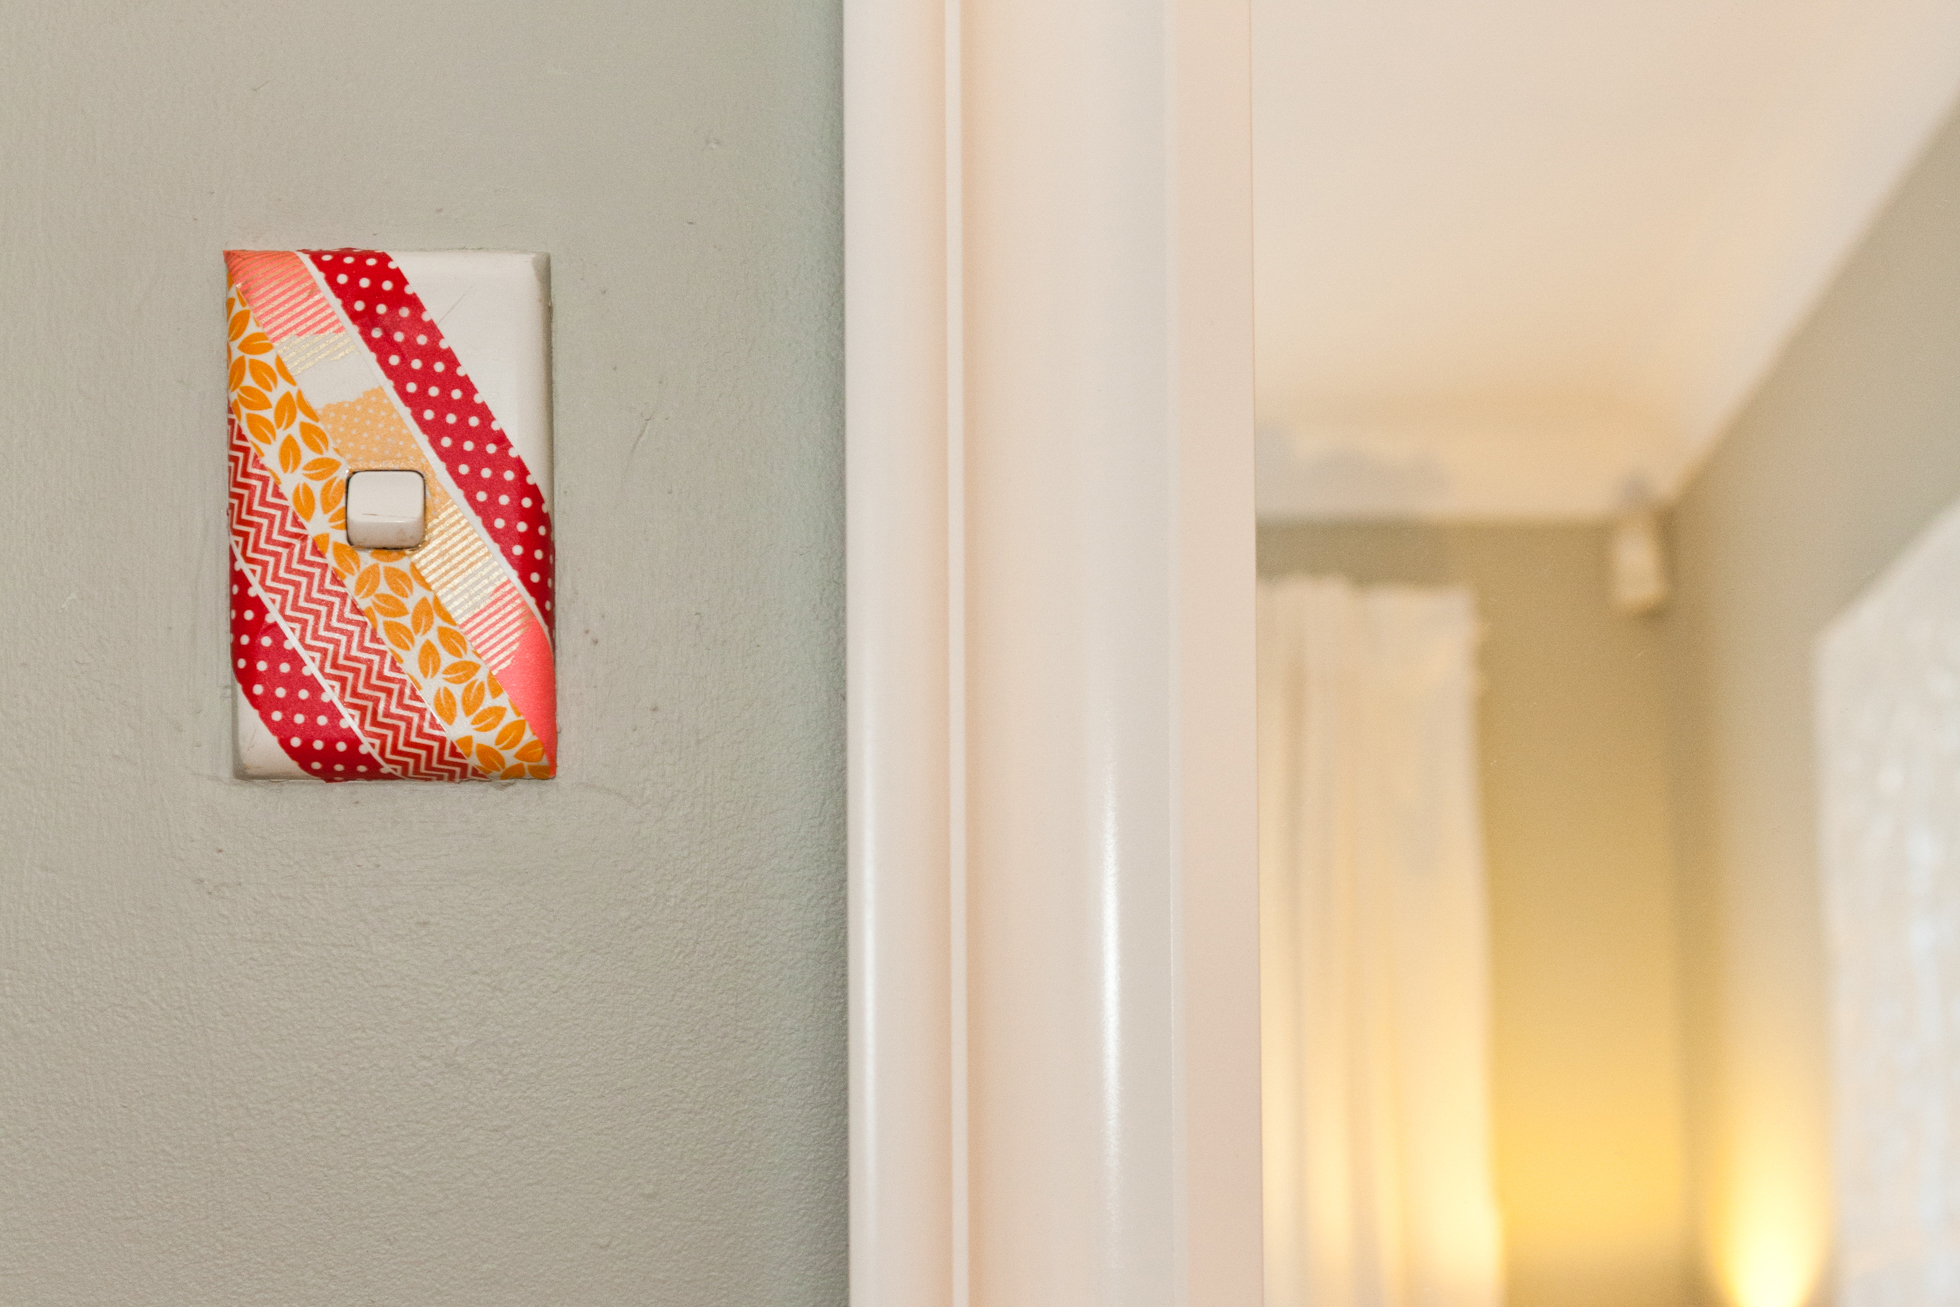 A pink and orange covered light switch on a cream wall